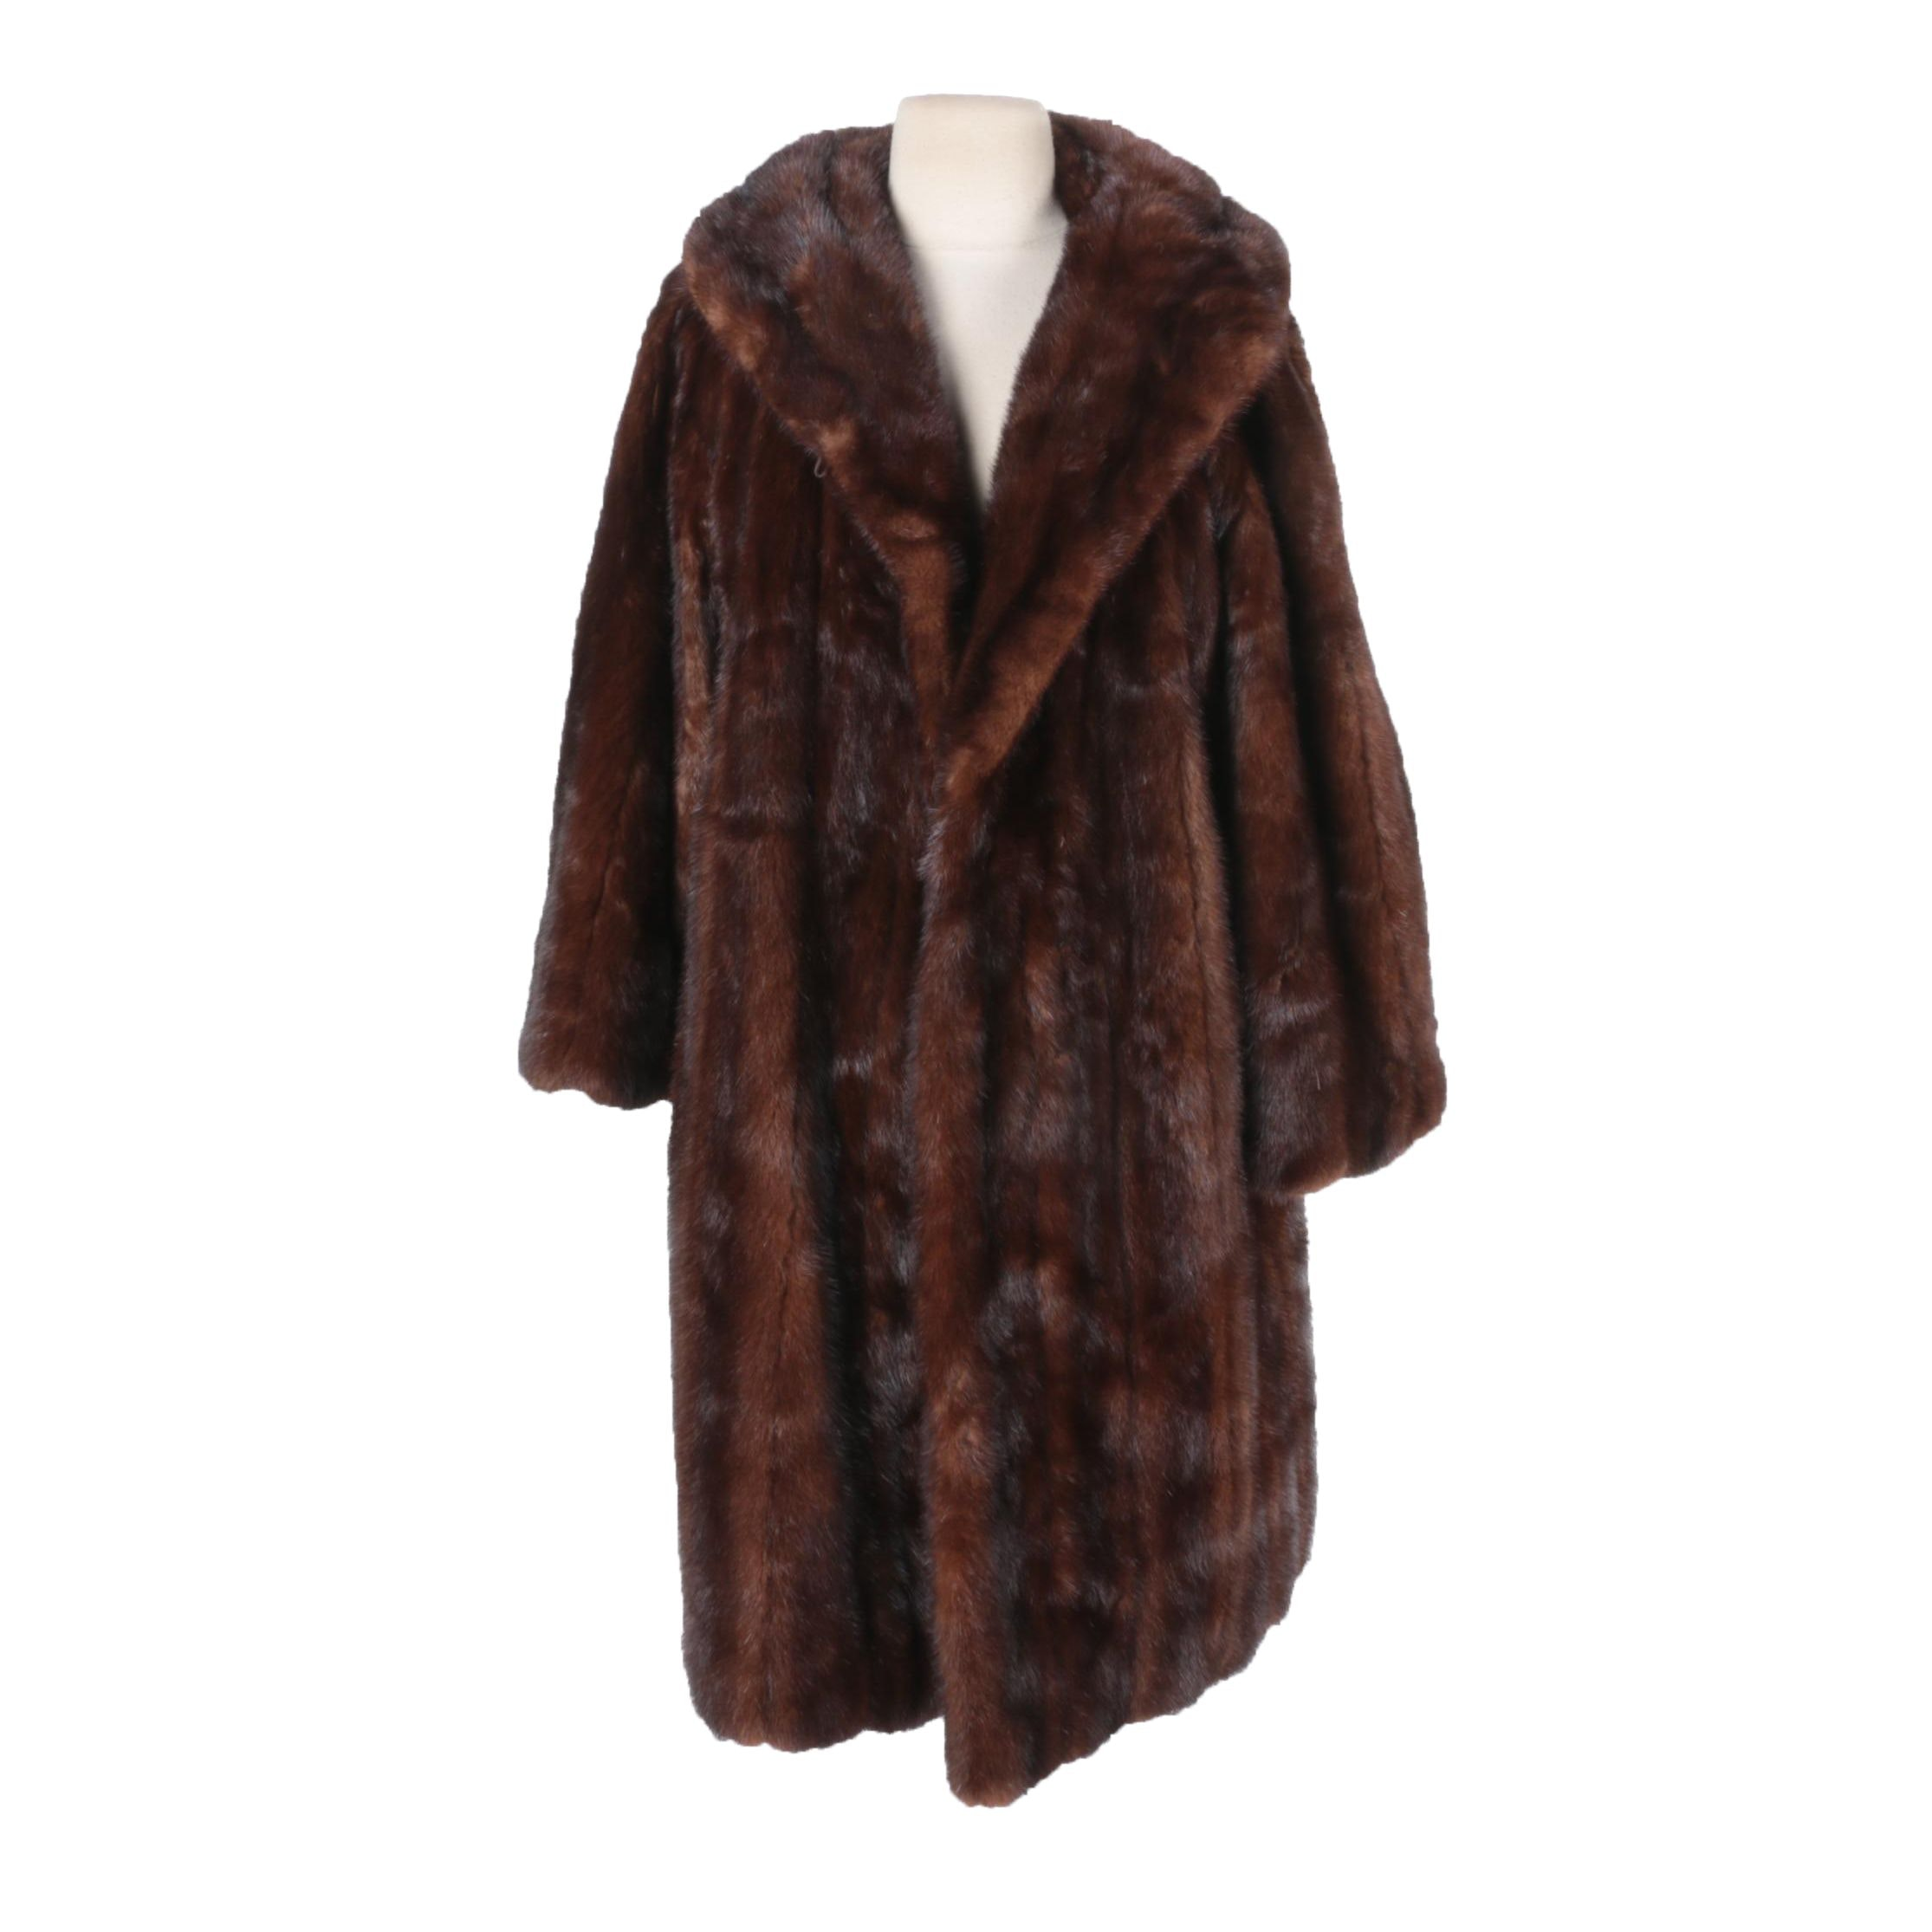 Women's Vintage Dark Mahogany Brown Mink Fur Coat